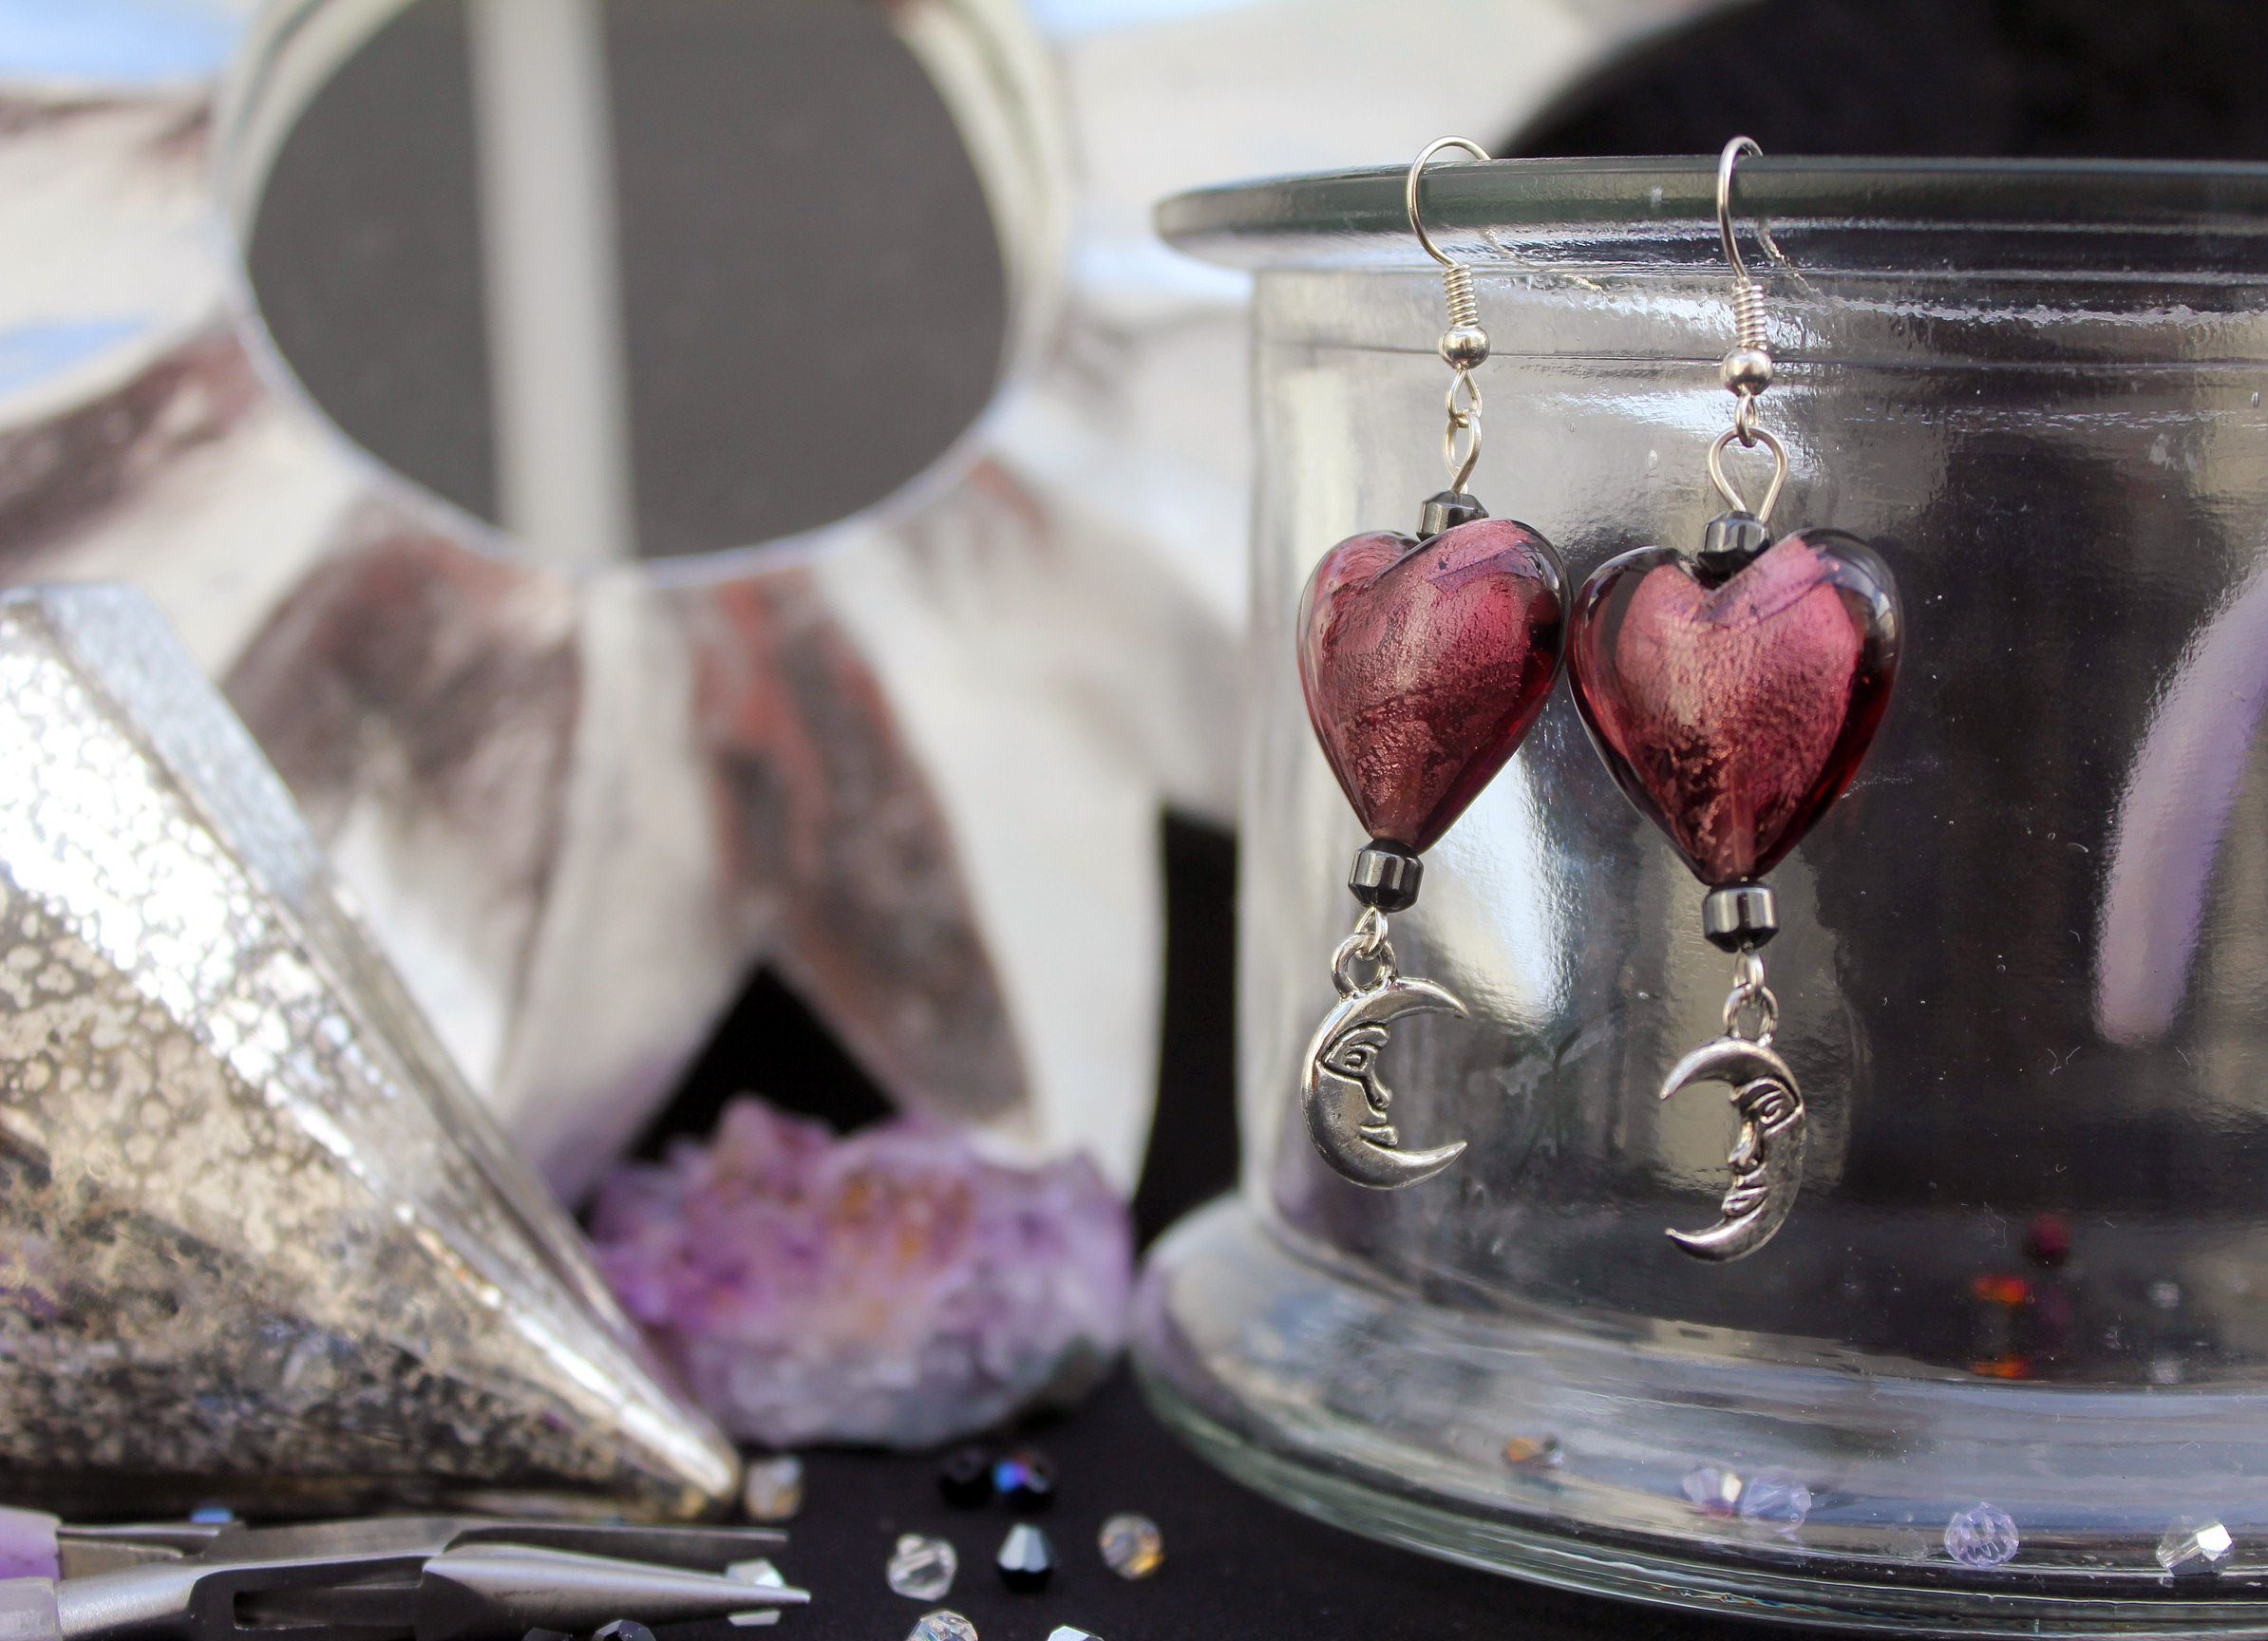 Tibetan silver crescent moons with amethyst Indian glass hearts and seed beads. £8 #boho #bohemian #ethnic #upcycled #handmade